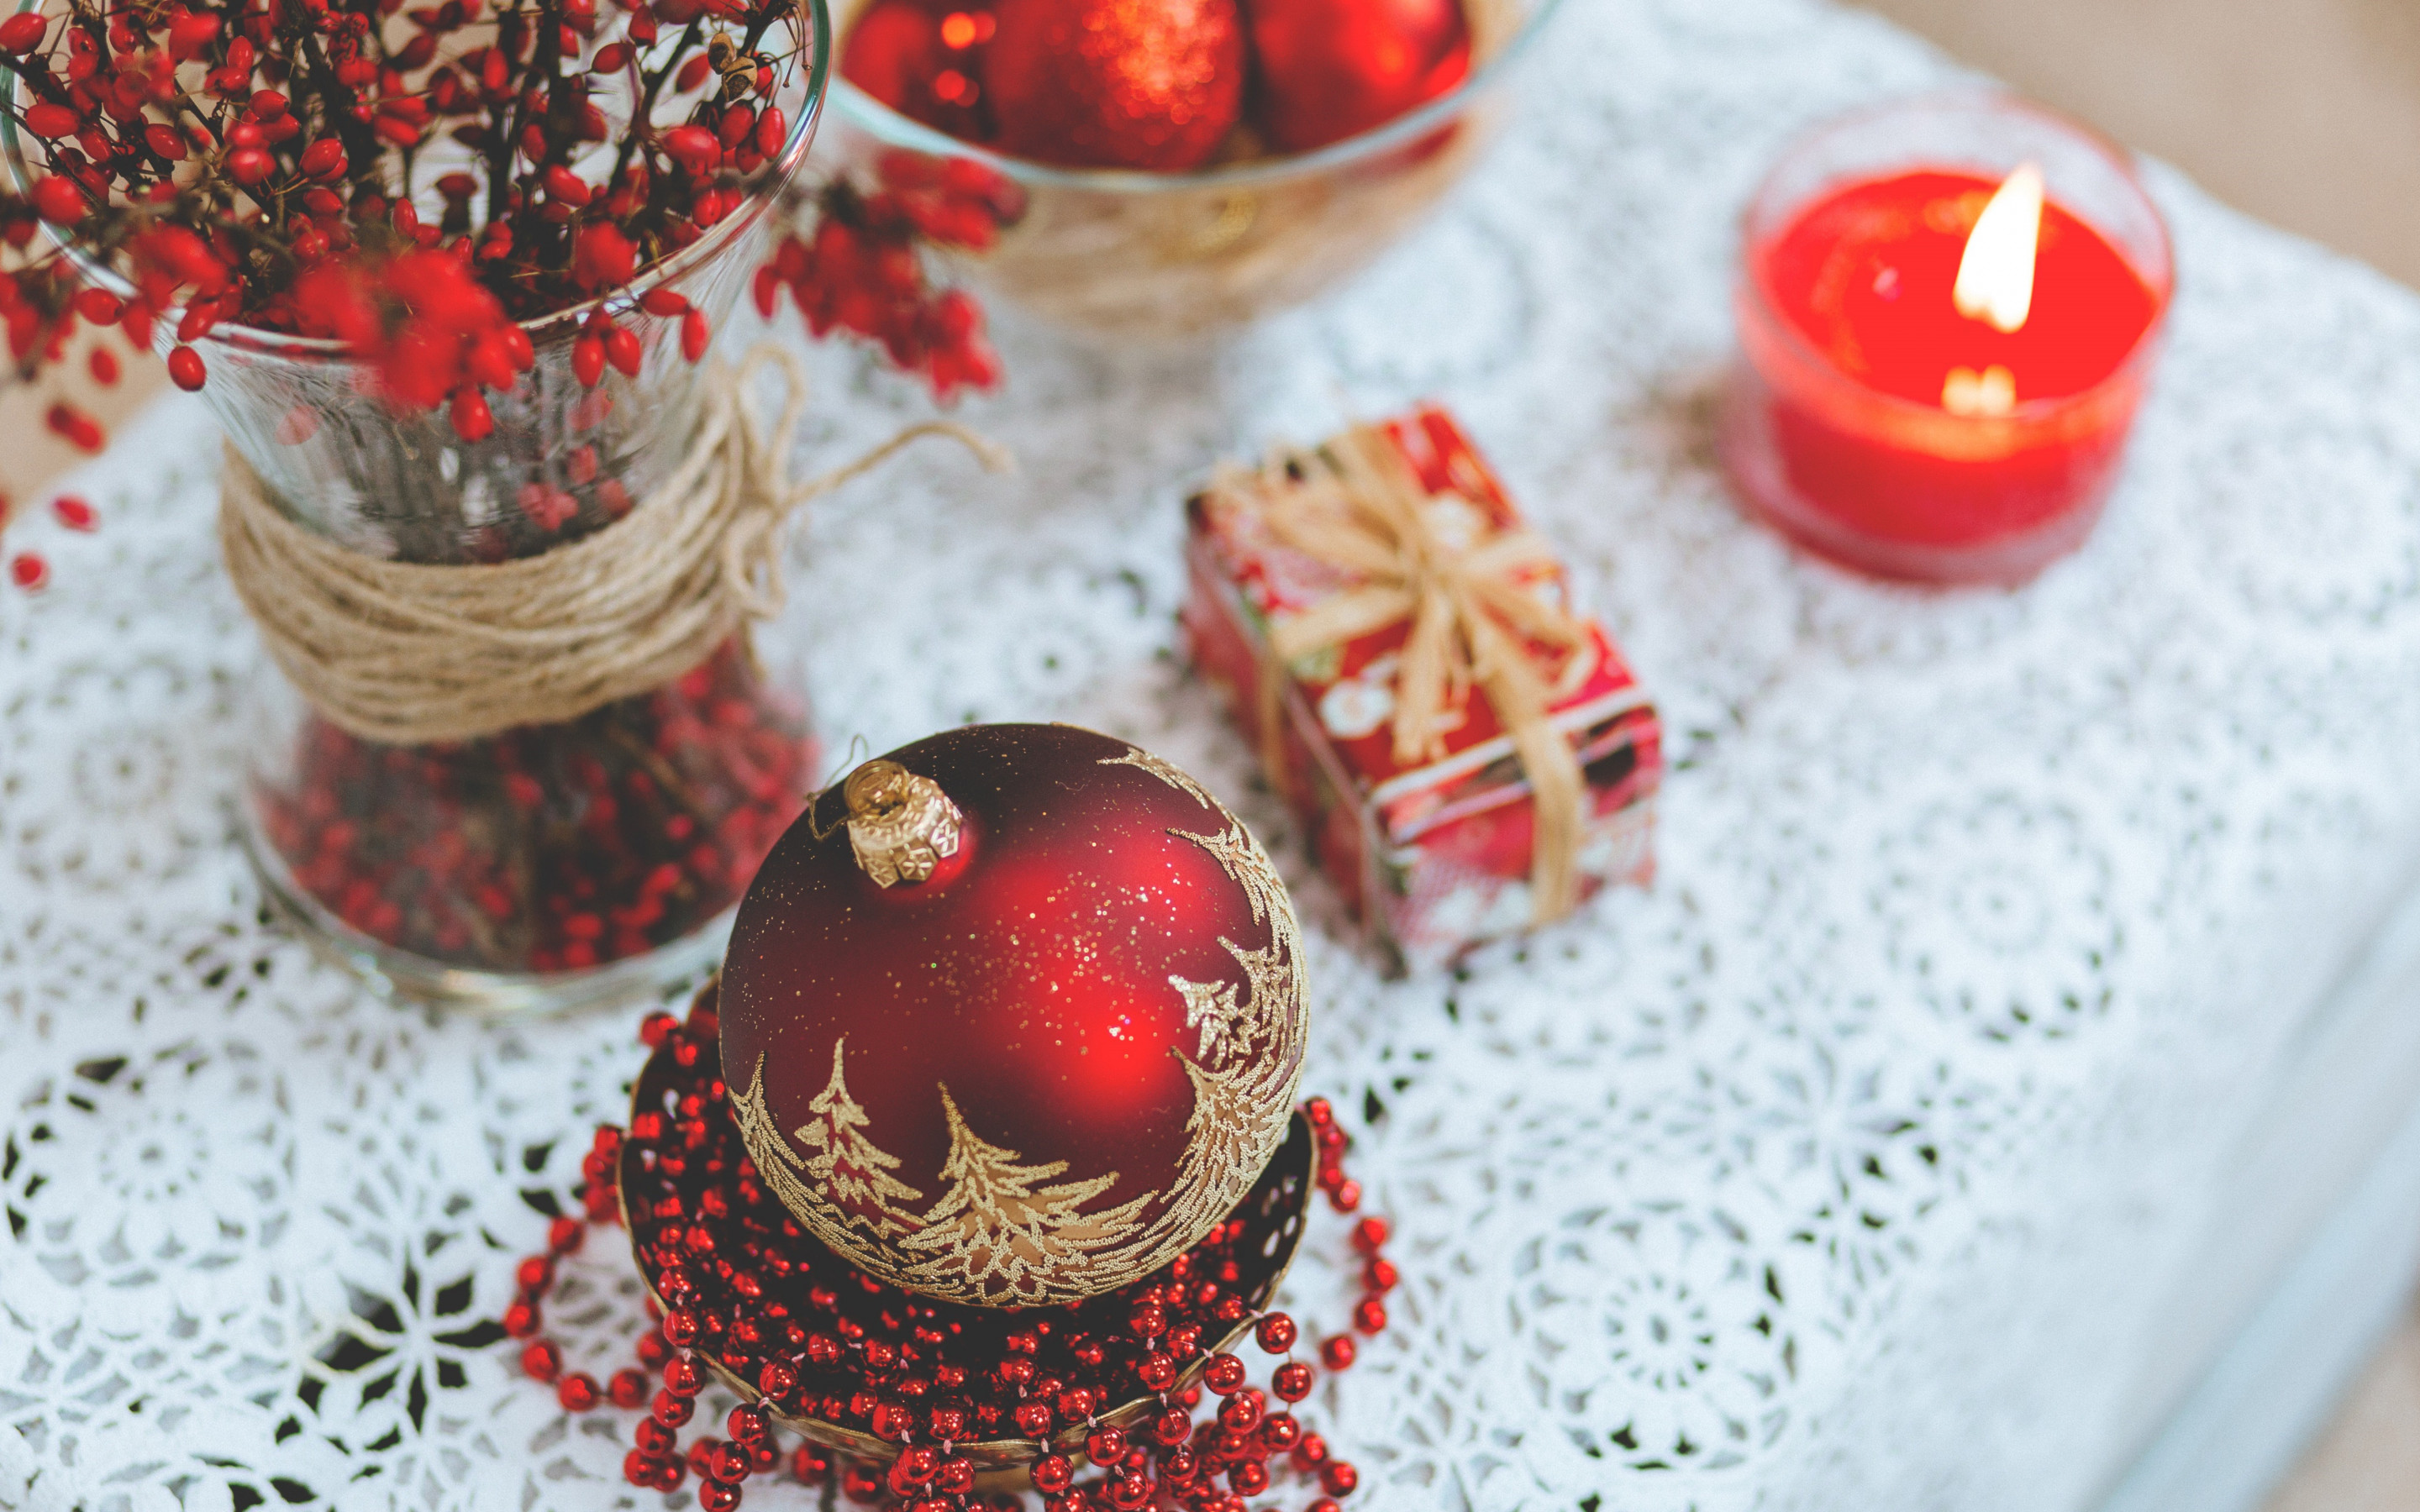 Christmas table | 2880x1800 wallpaper